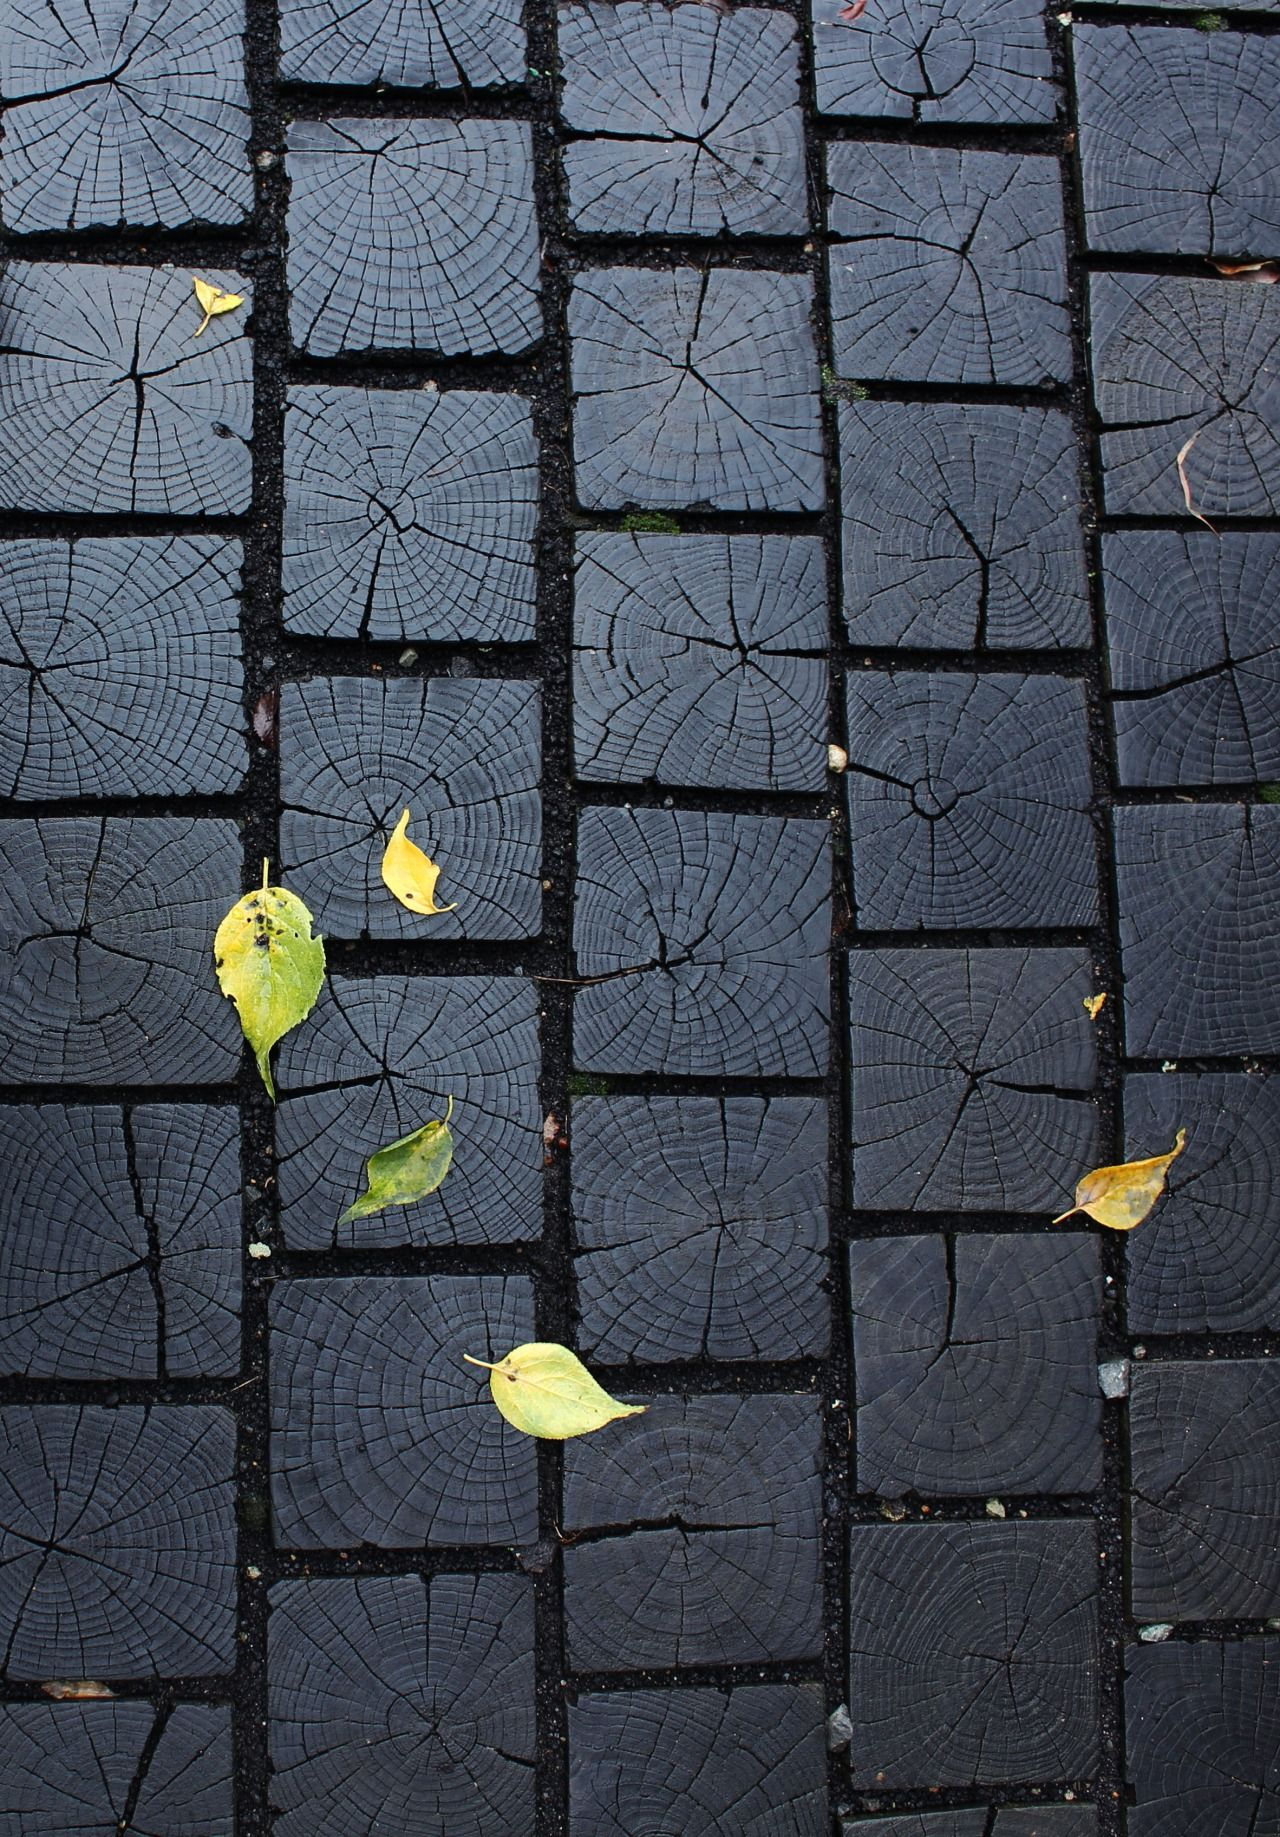 How to char wood for pathways, wall accent, whatever for a stunning #black accent in the #garden.